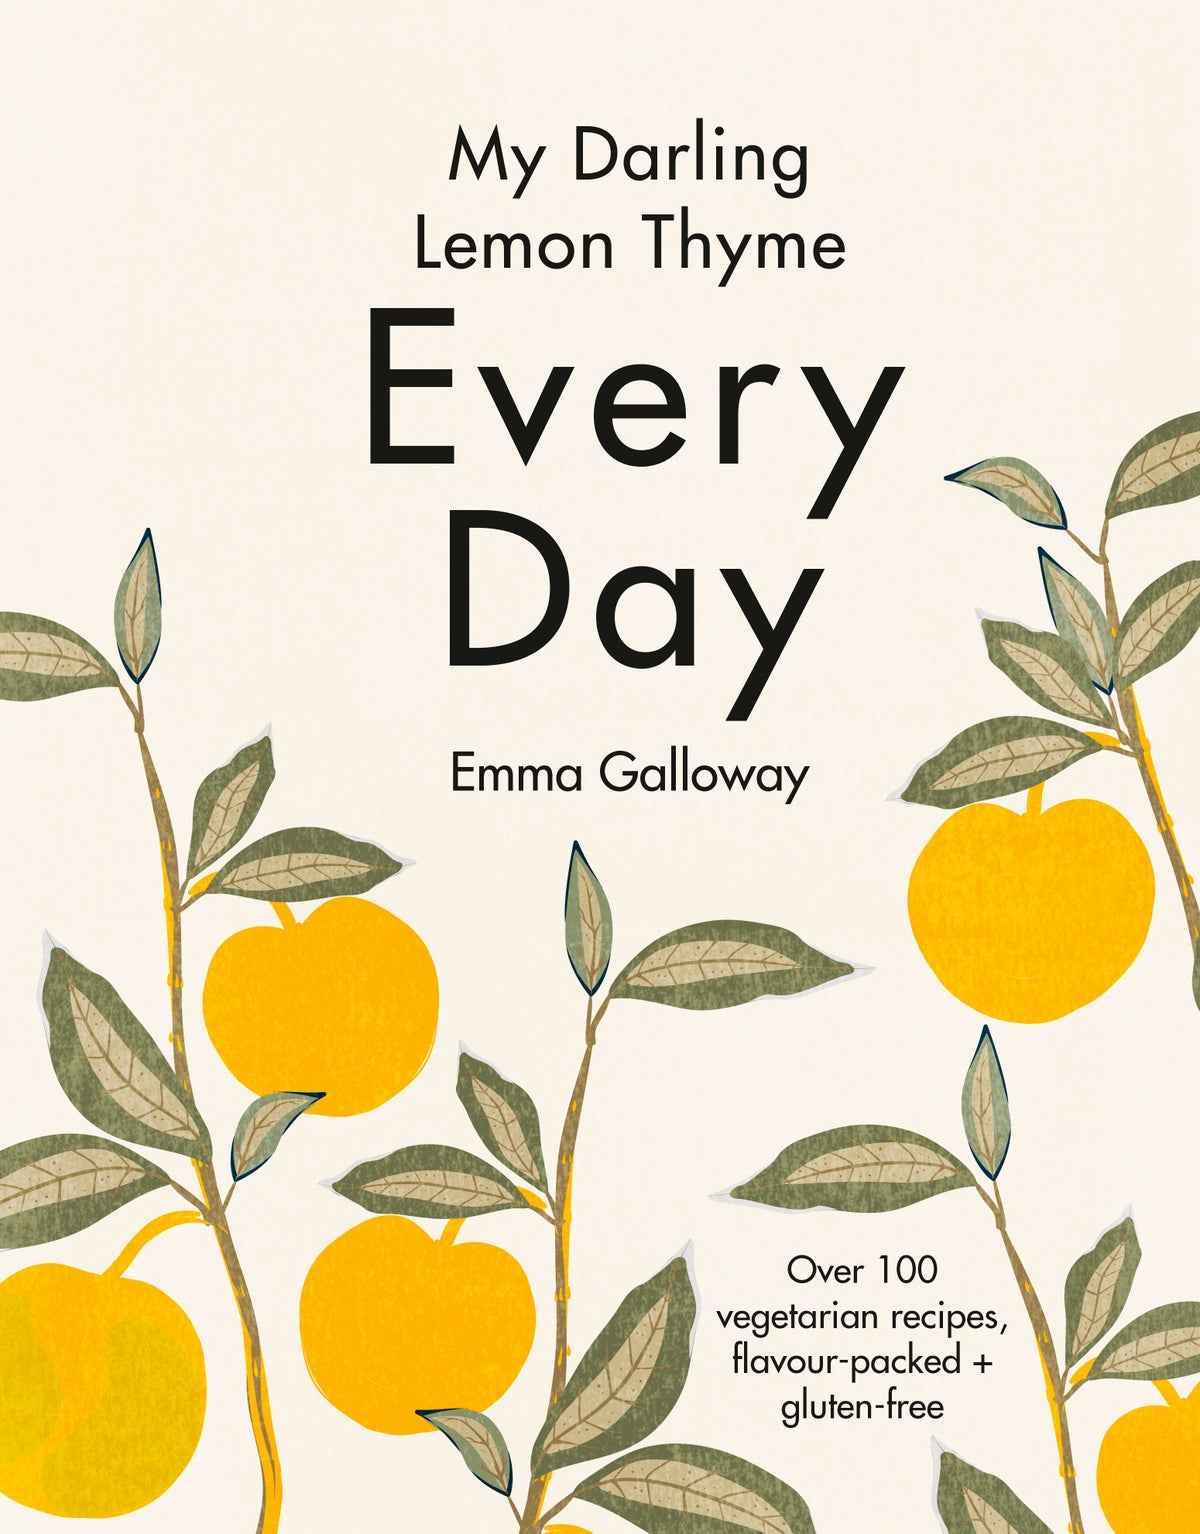 My Darling Lemon Thyme Every Day : Emma Galloway